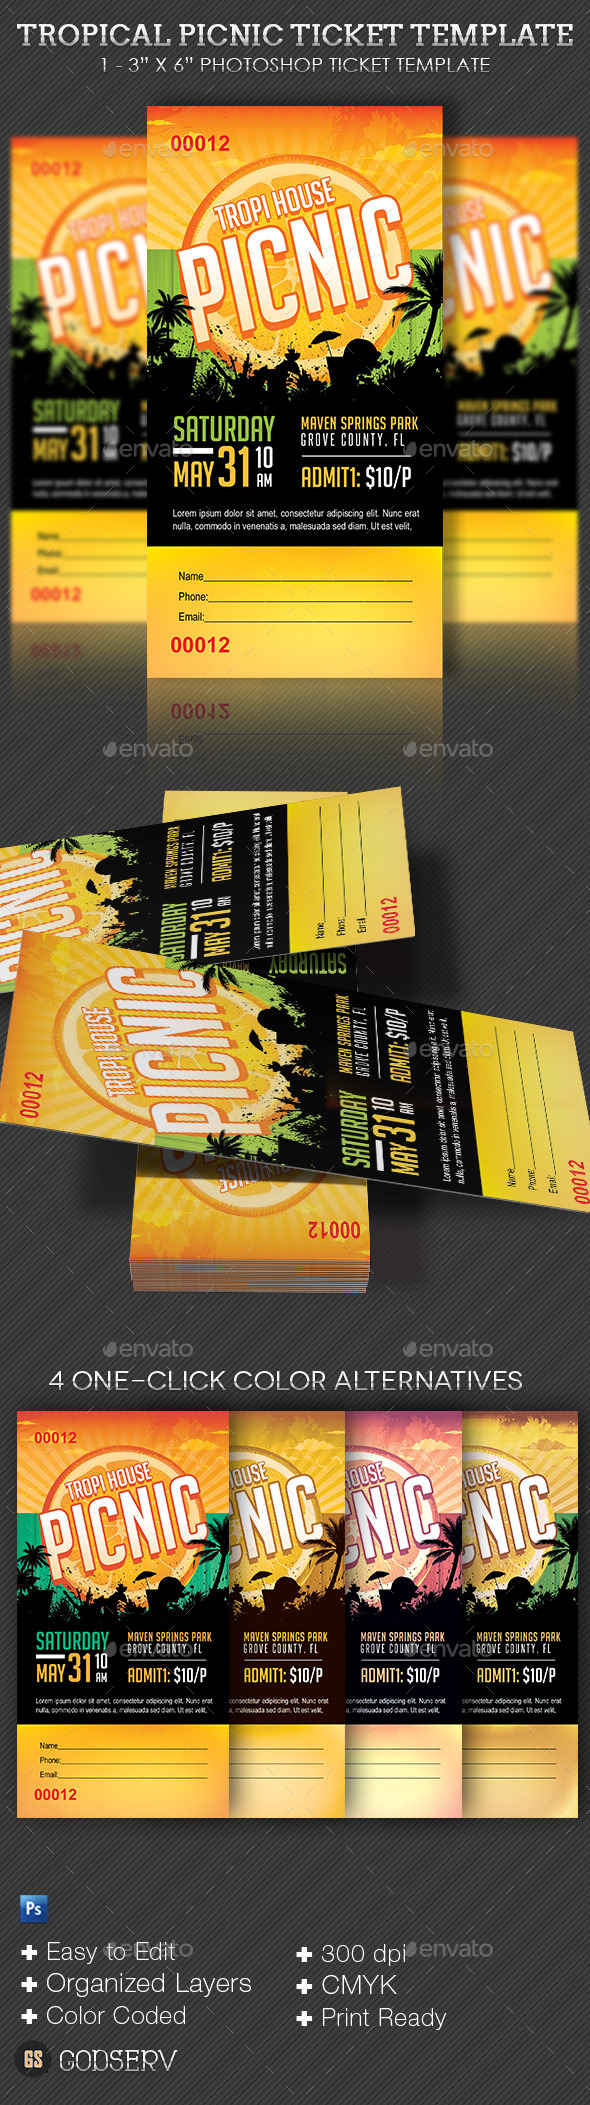 GraphicRiver Tropical Picnic Ticket Template 10434467